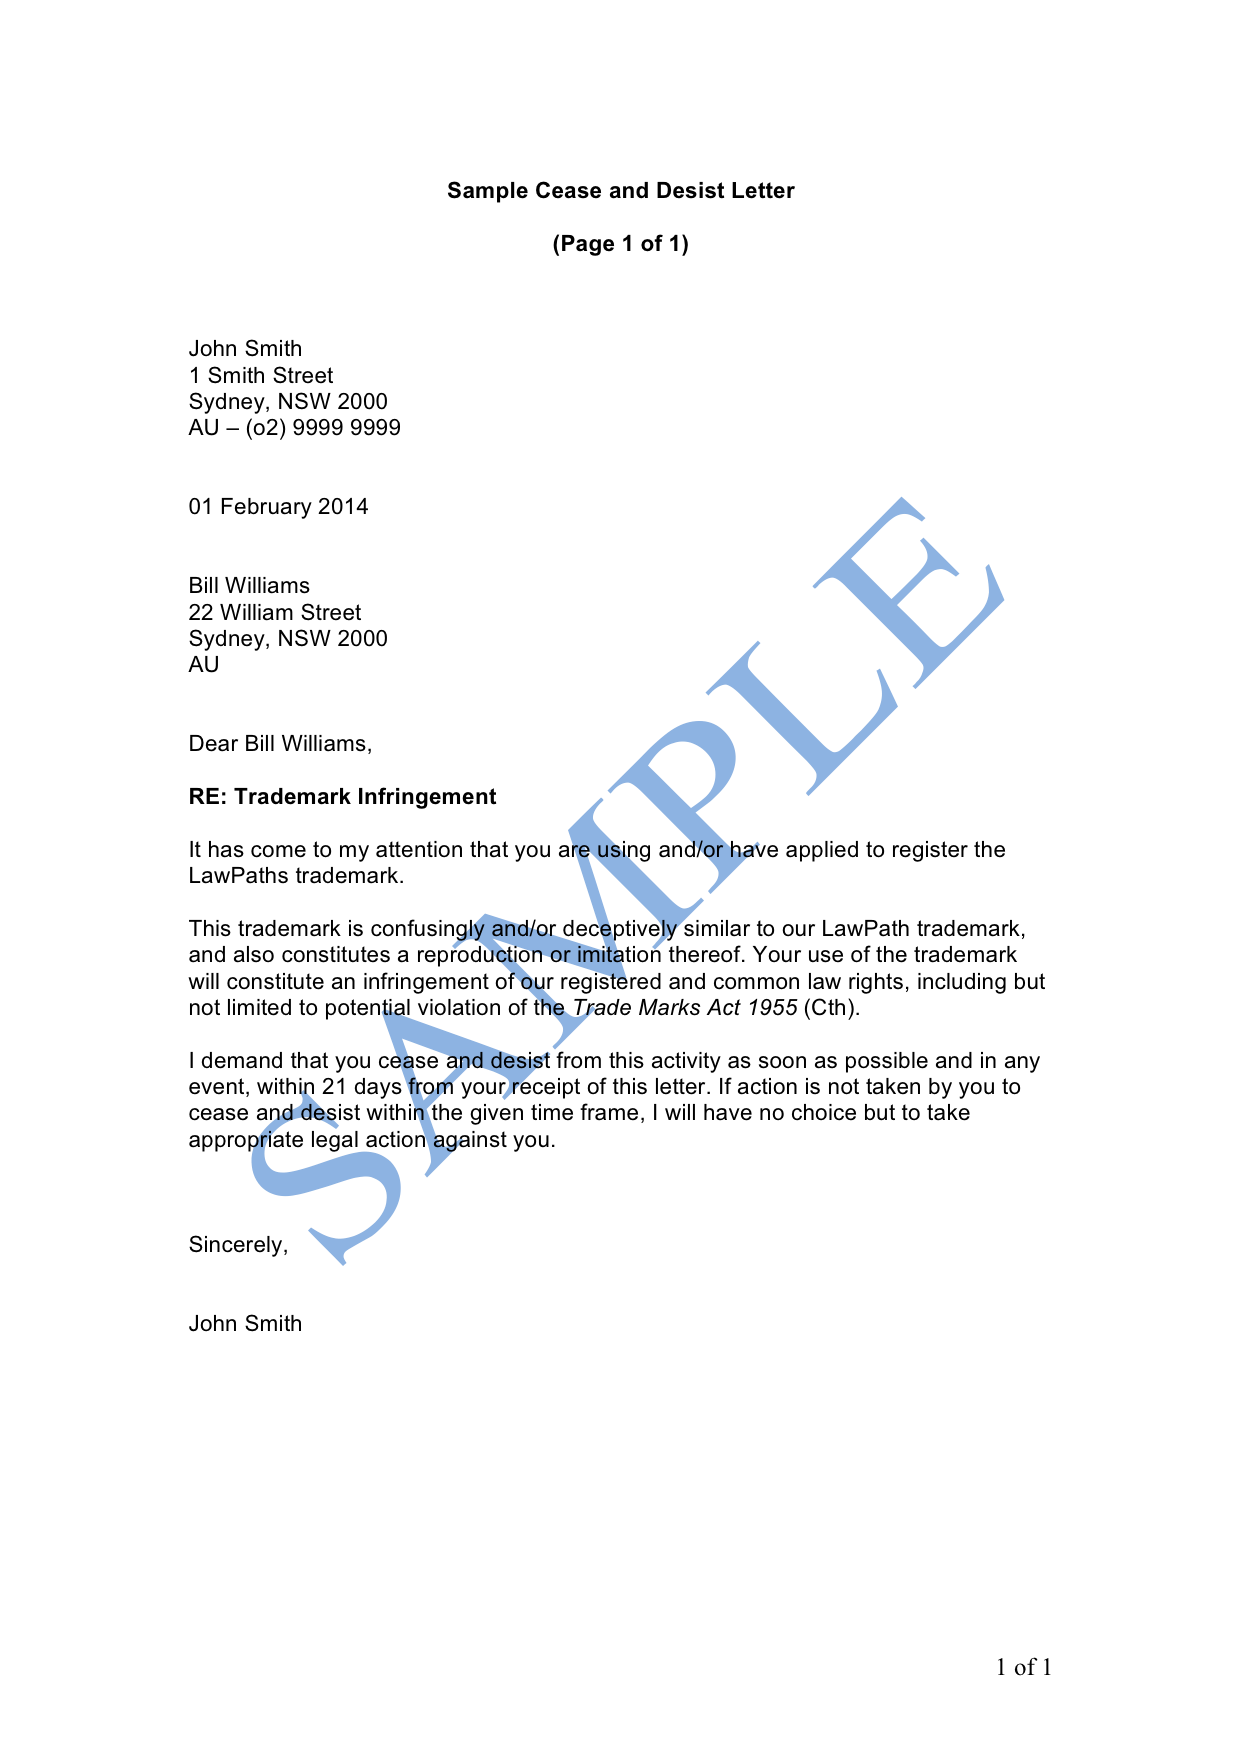 Sample legal letter of advice cease and desist letter sample how to cease and desist letter sample what does the cease and desist letter cover spiritdancerdesigns